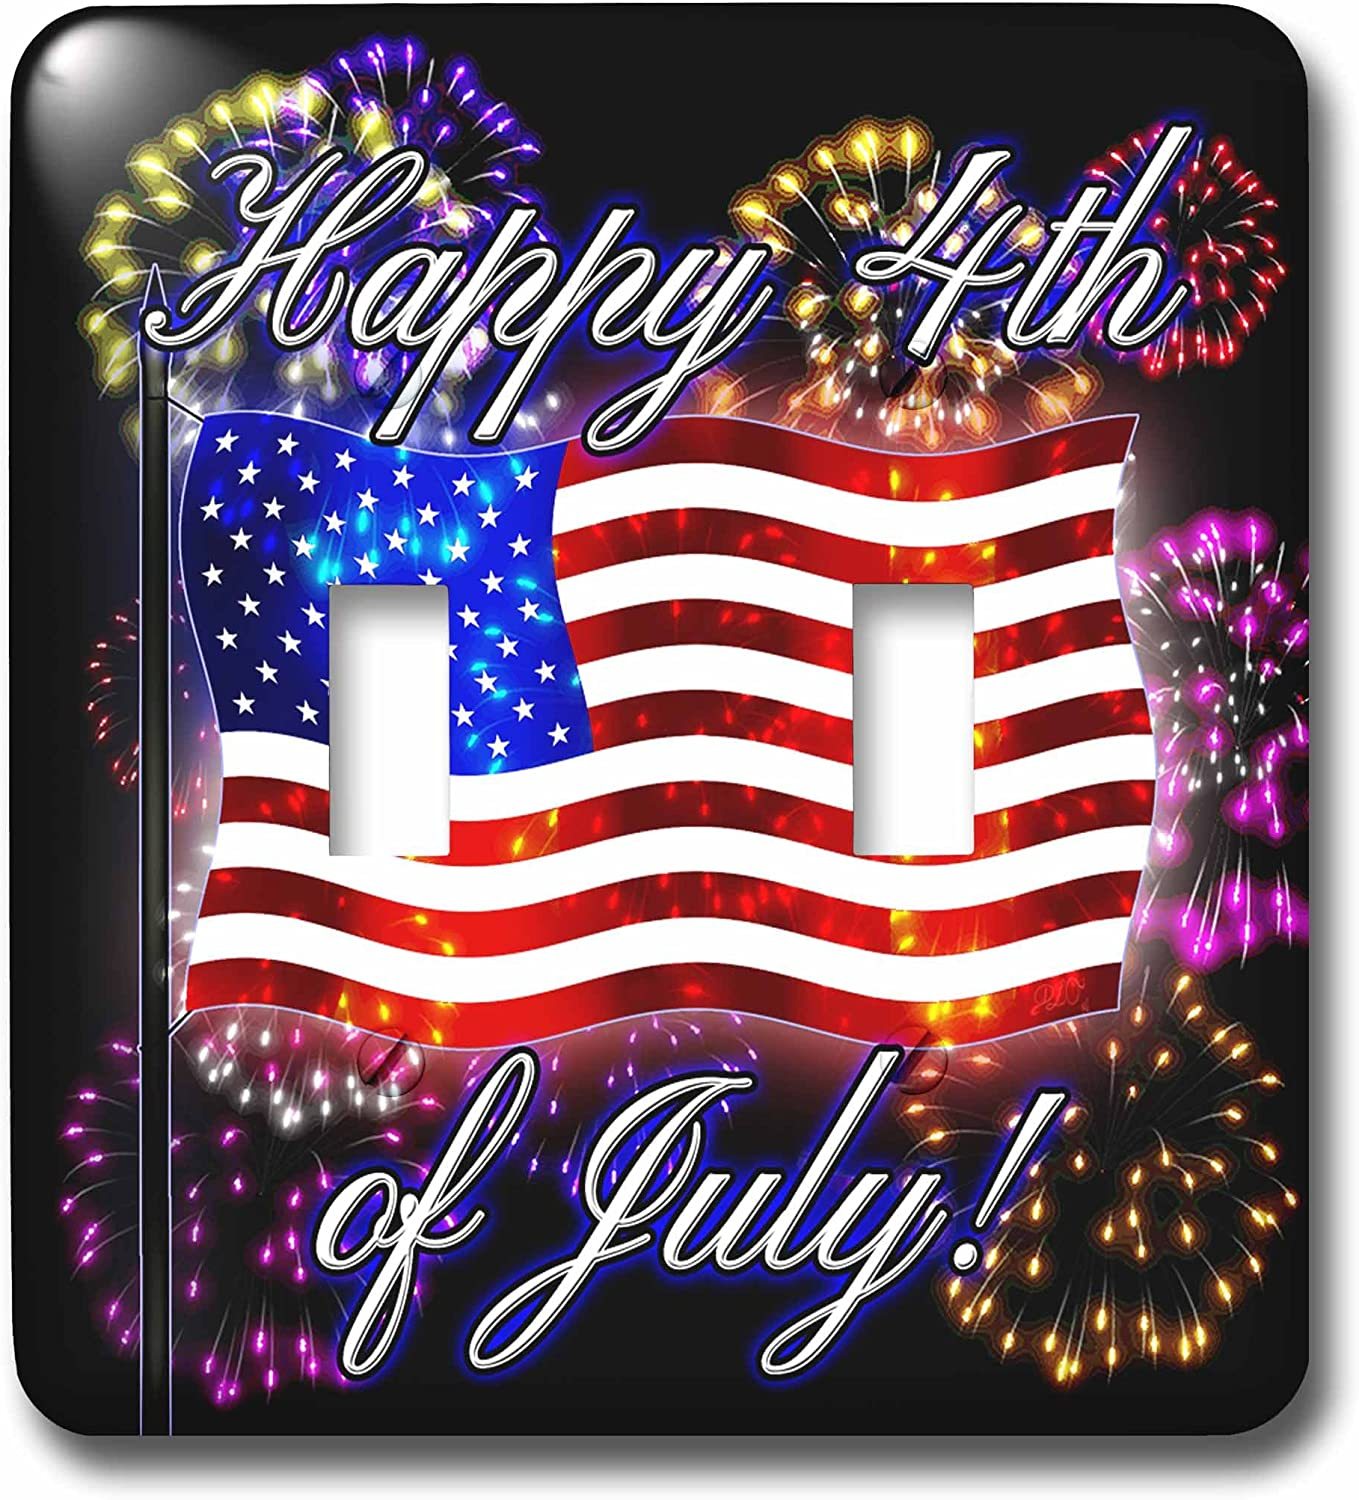 3drose Lsp 242308 2 4th Of July American Flag With Fireworks Digital Art Double Toggle Switch